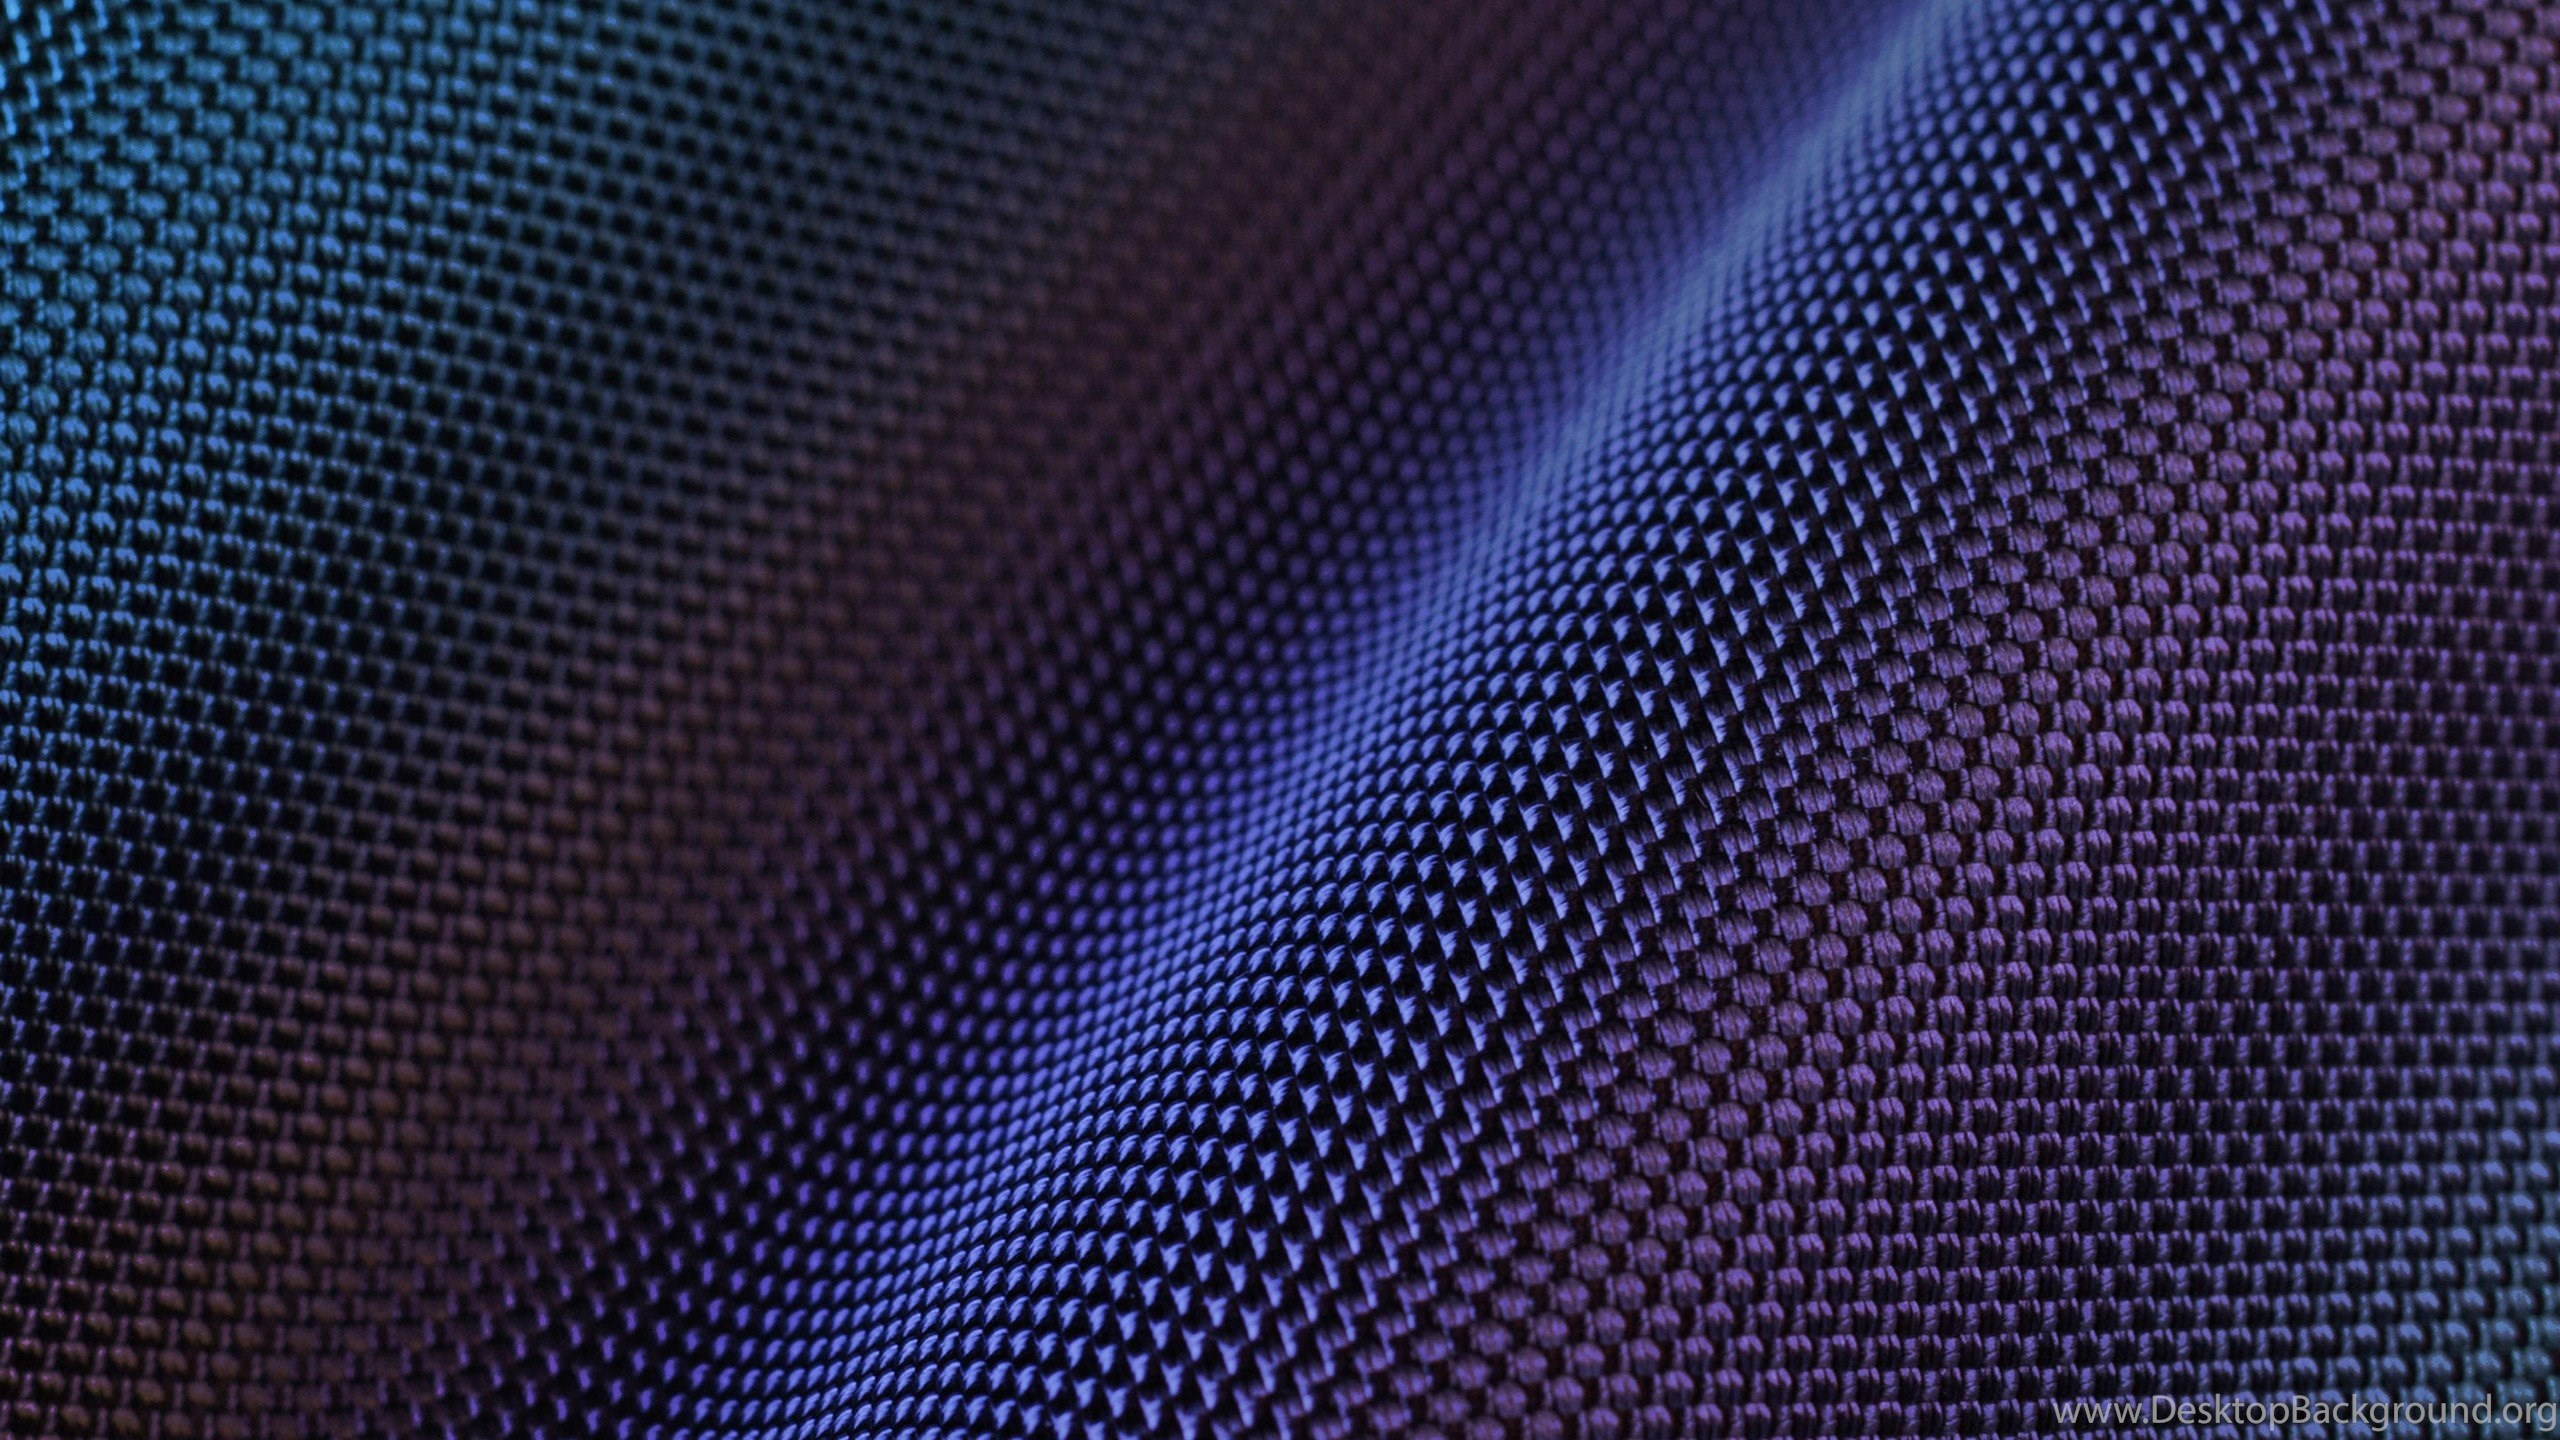 3d Touch Wallpaper For Android Download Tri Nylon Texture Hd Wallpapers For 2560 X 1440